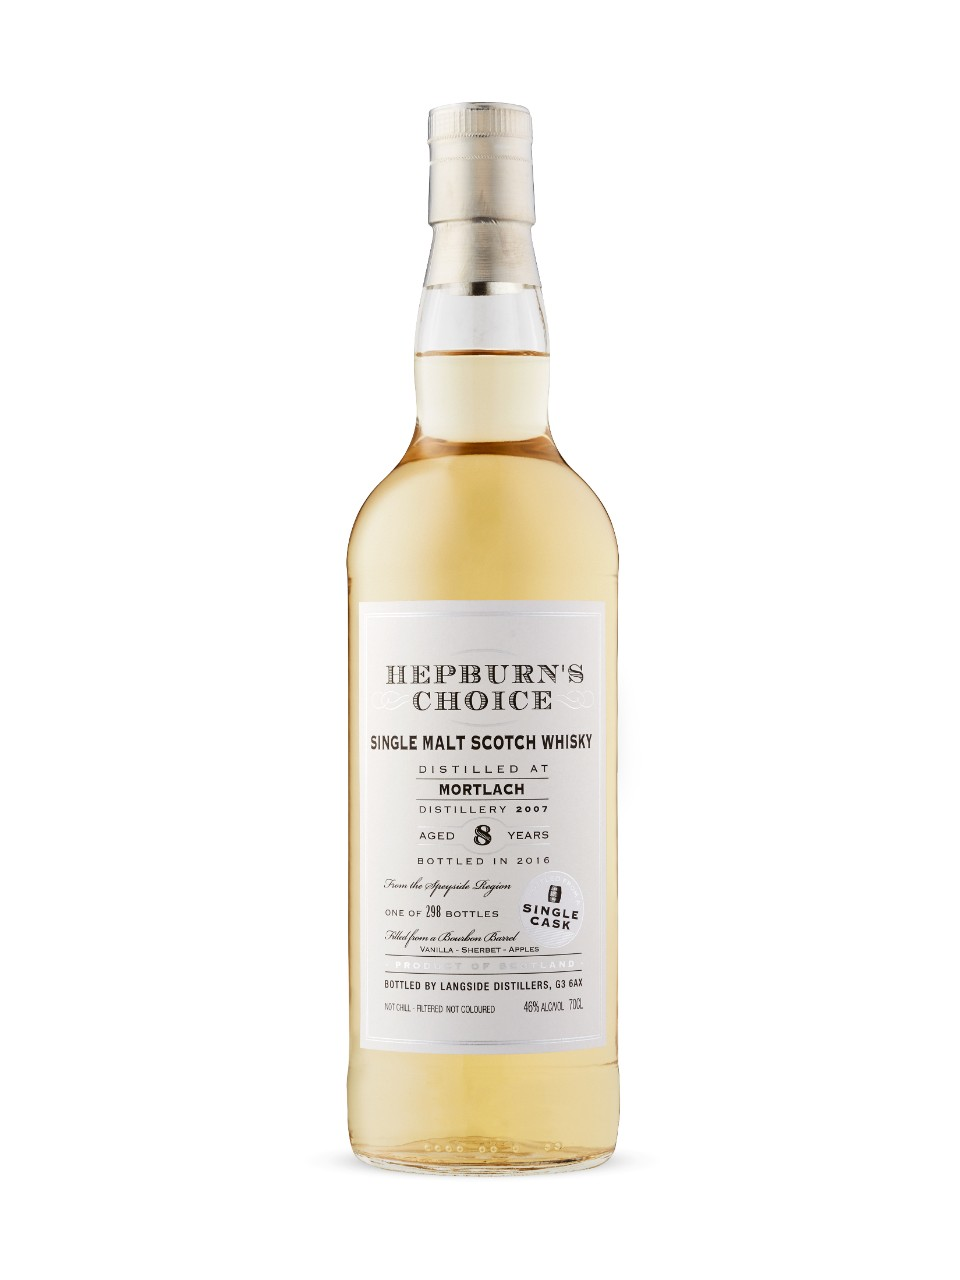 Hepburn's Choice Mortlach 8 Year Old Scotch